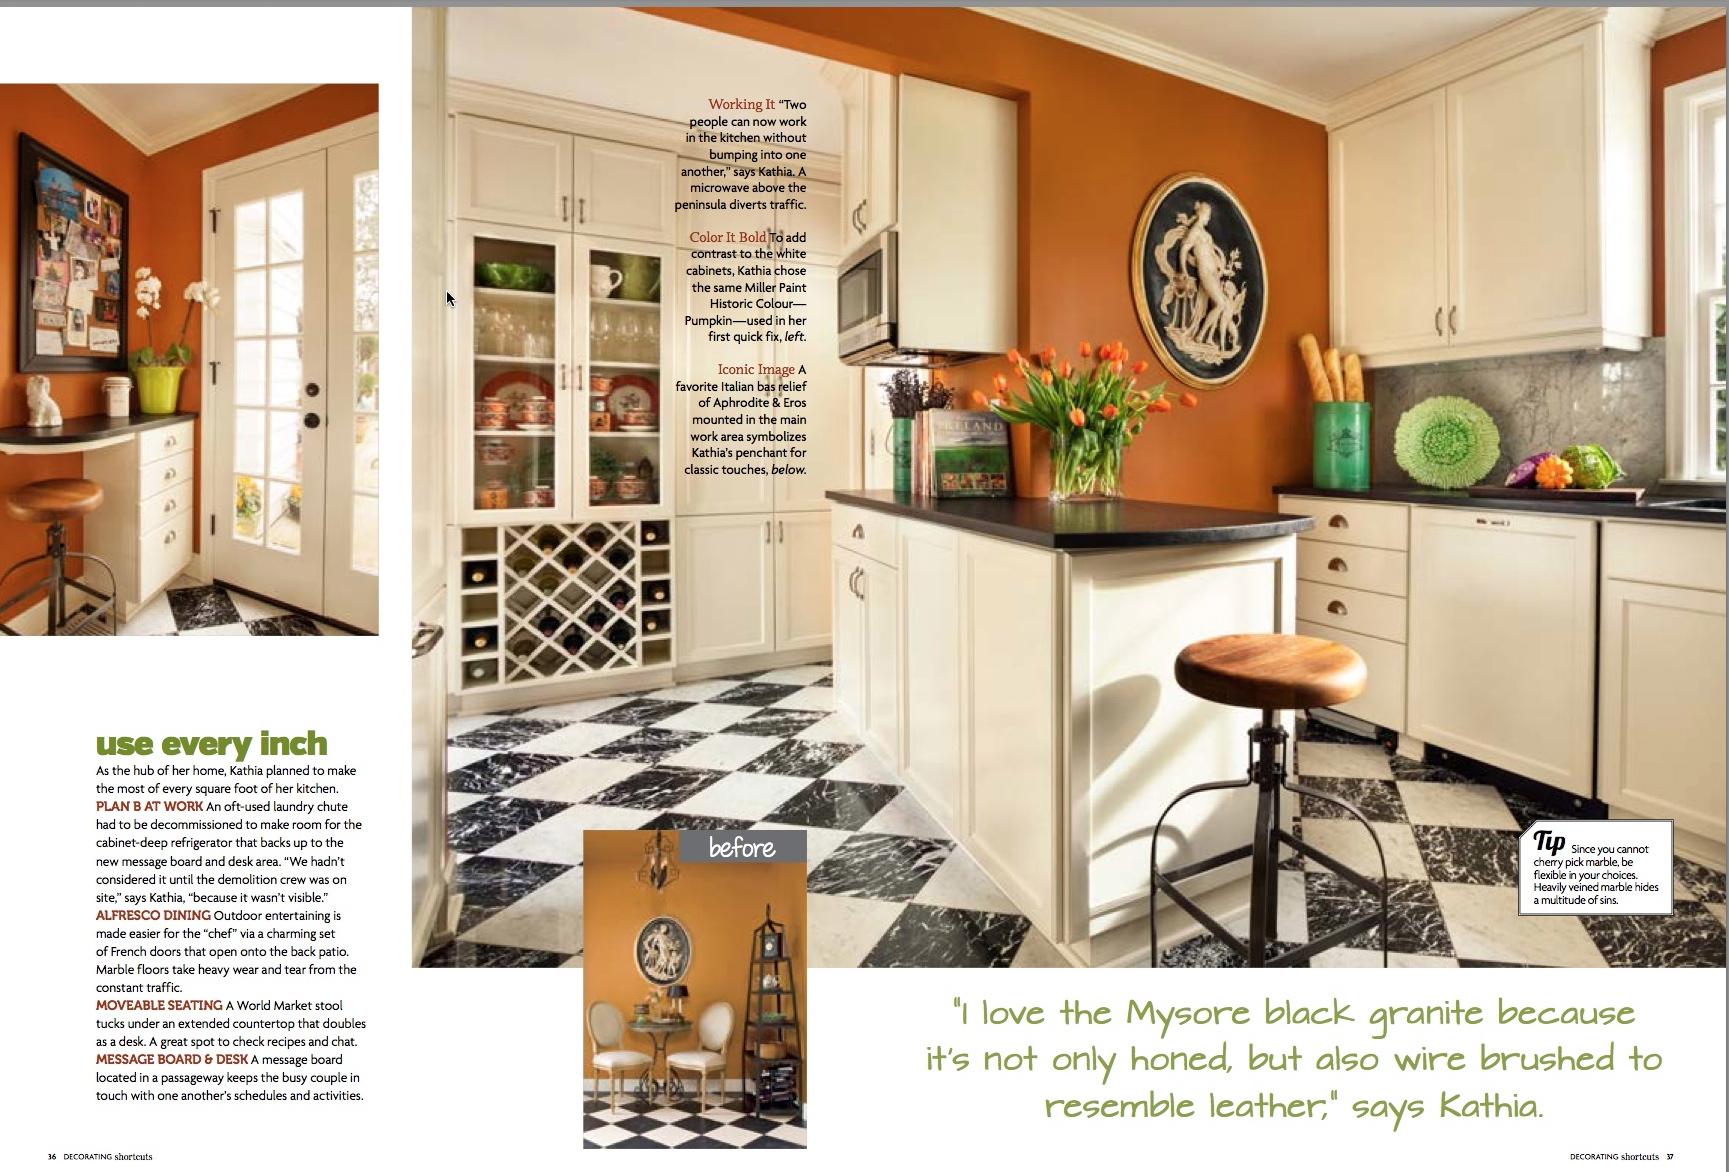 kitchen p 1 kitchen p - Kitchen Remodeling Magazine